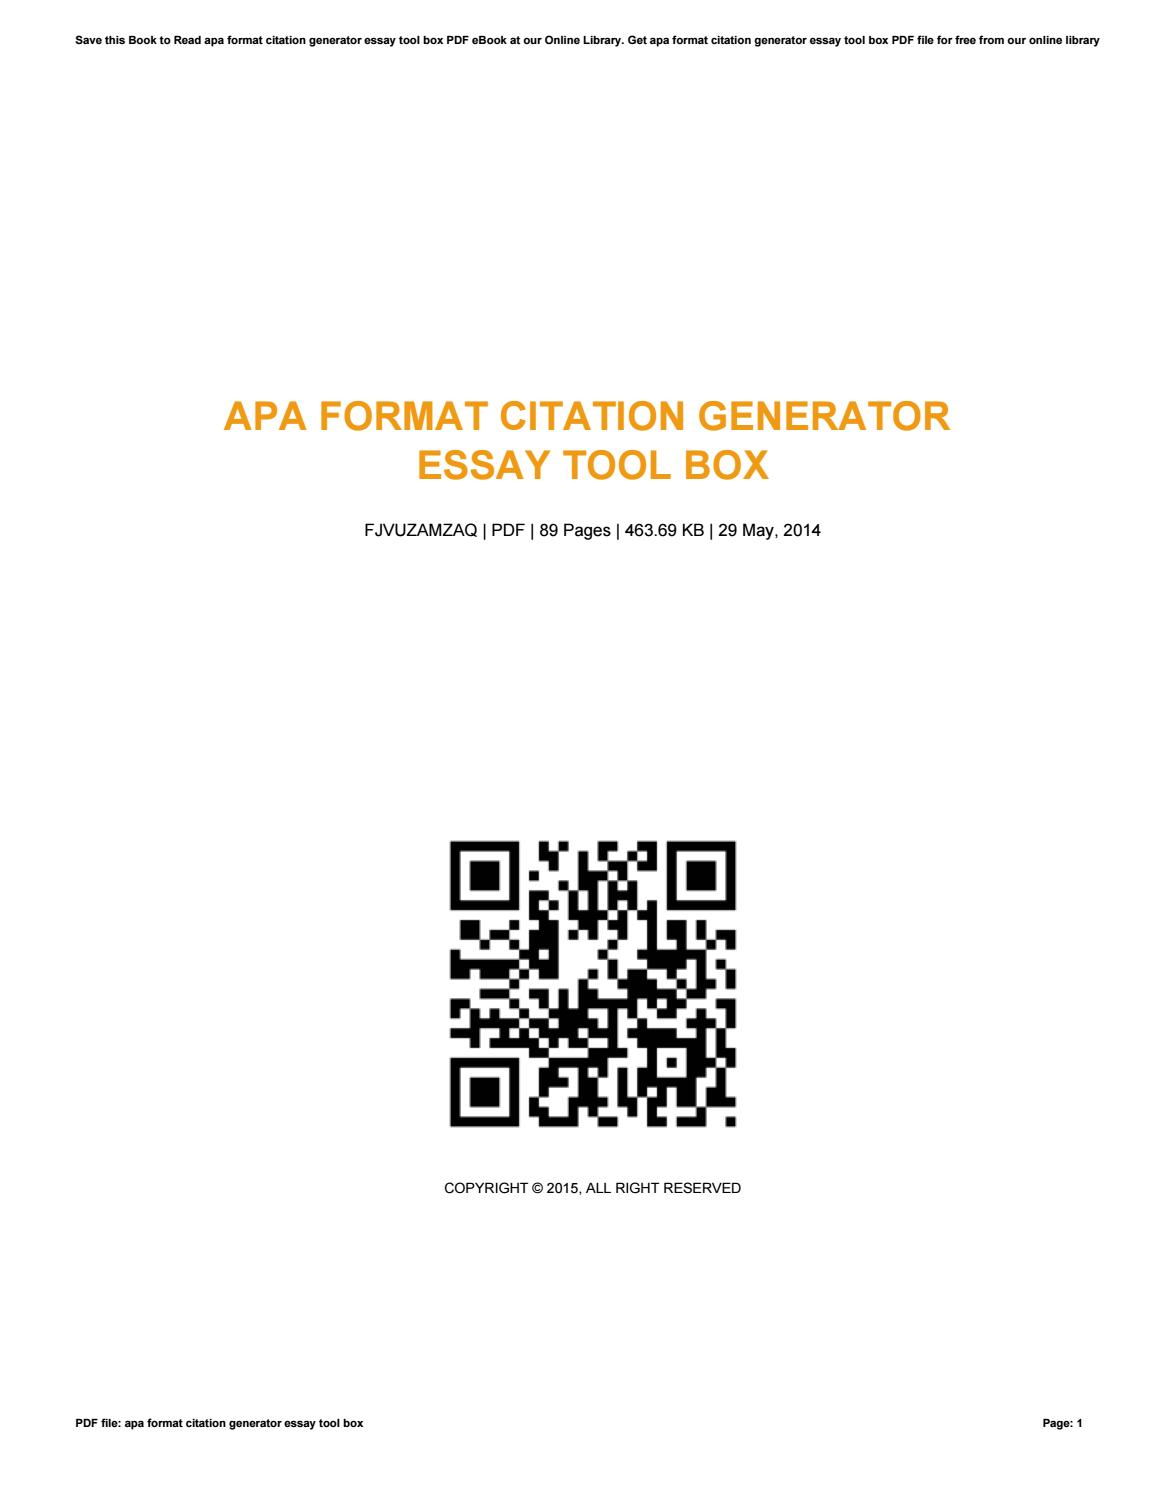 014 Apa Research Paper Citation Generator Page 1 Surprising Format Full